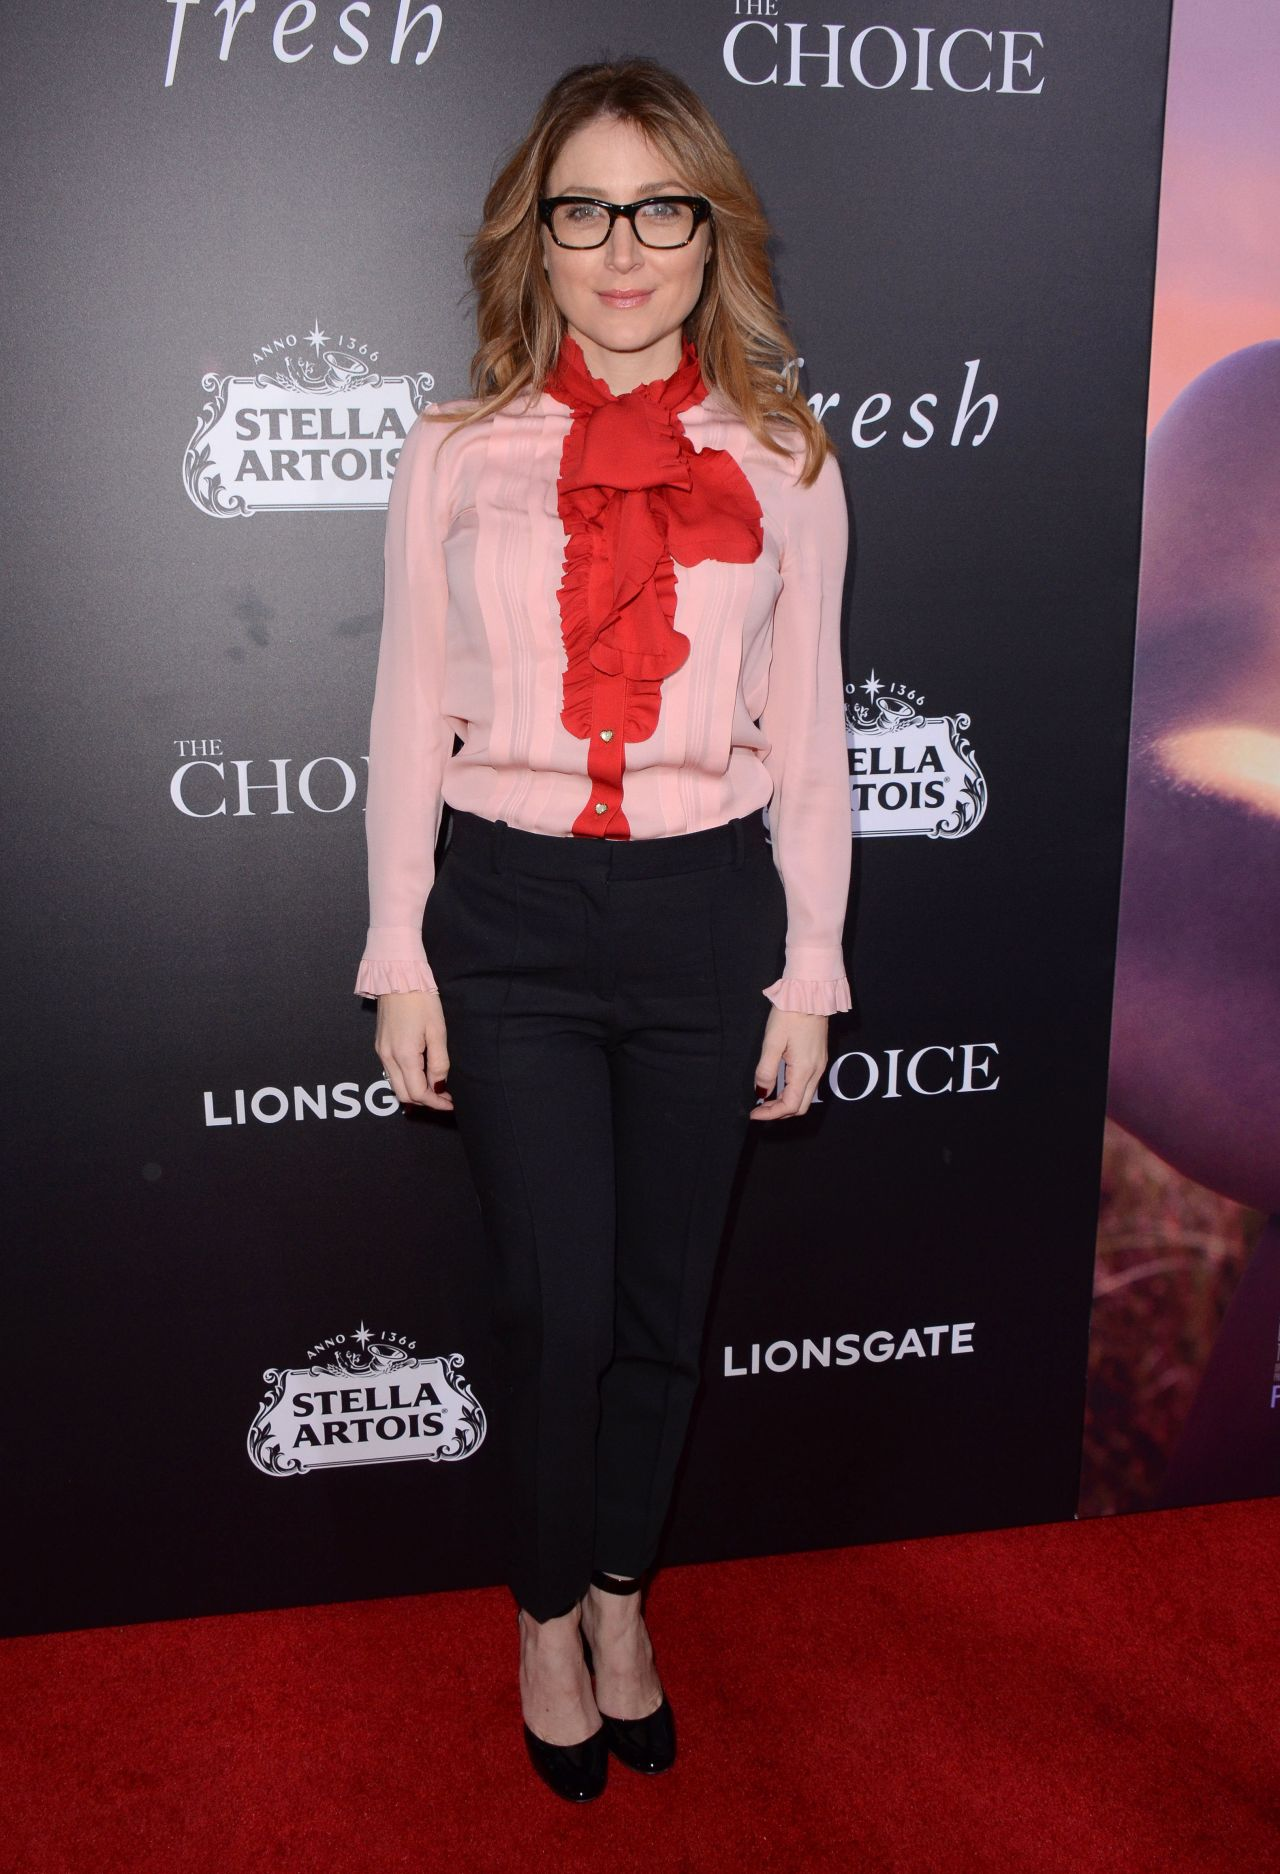 sasha-alexander-lionsgate-s-the-choice-premiere-in-hollywood-1